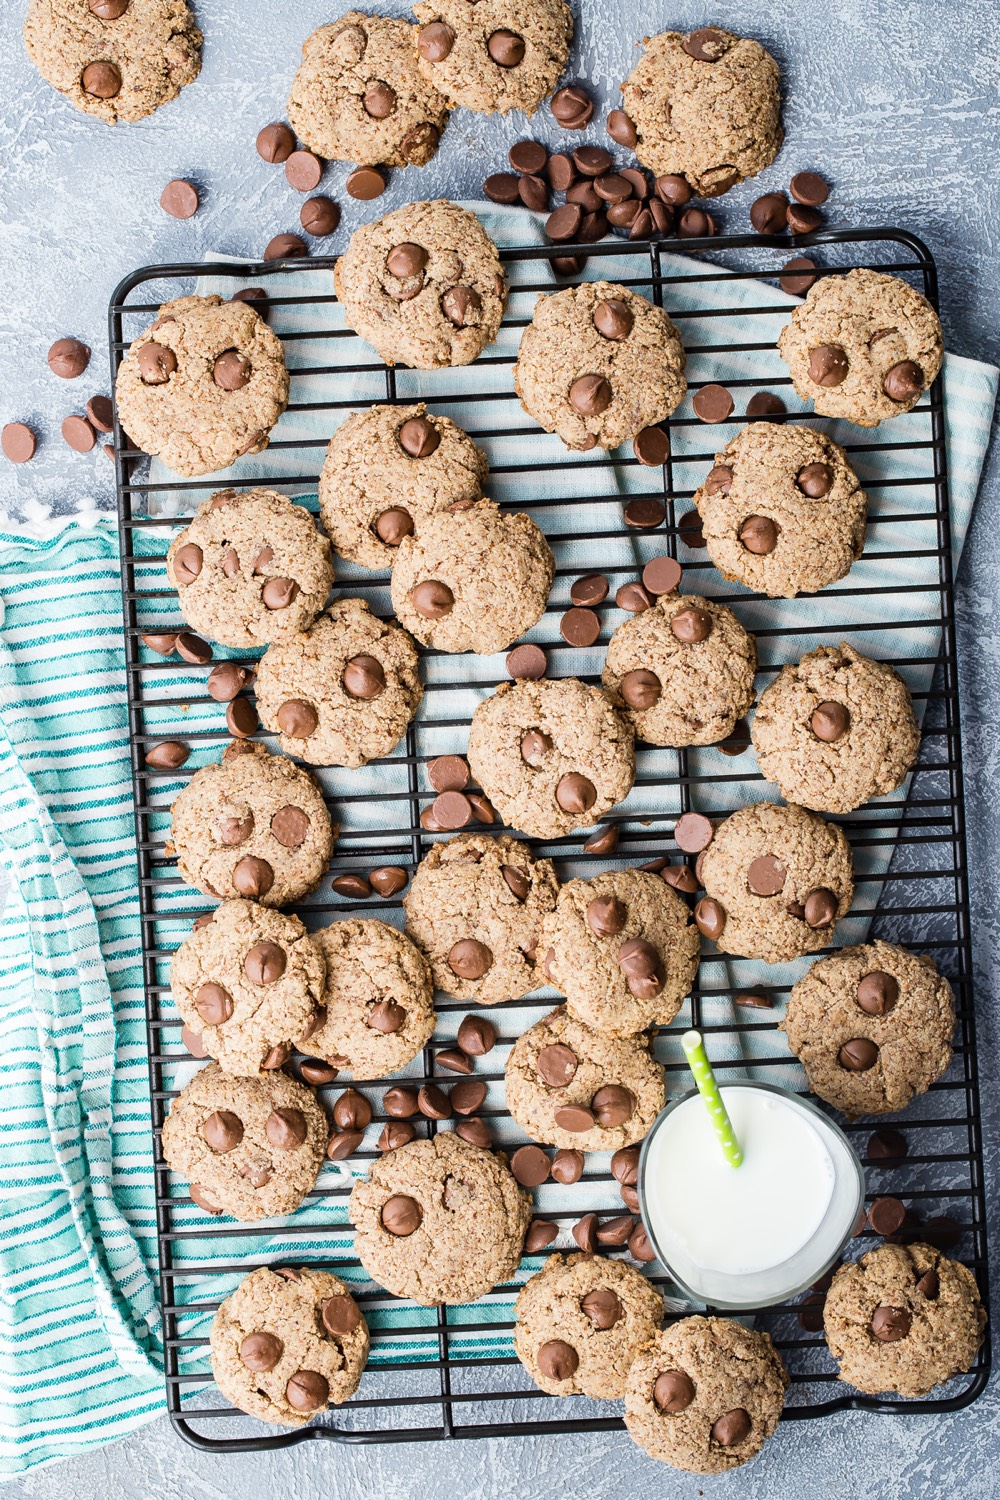 Grain Free Chocolate Chip Cookies recipe from Weelicious.com